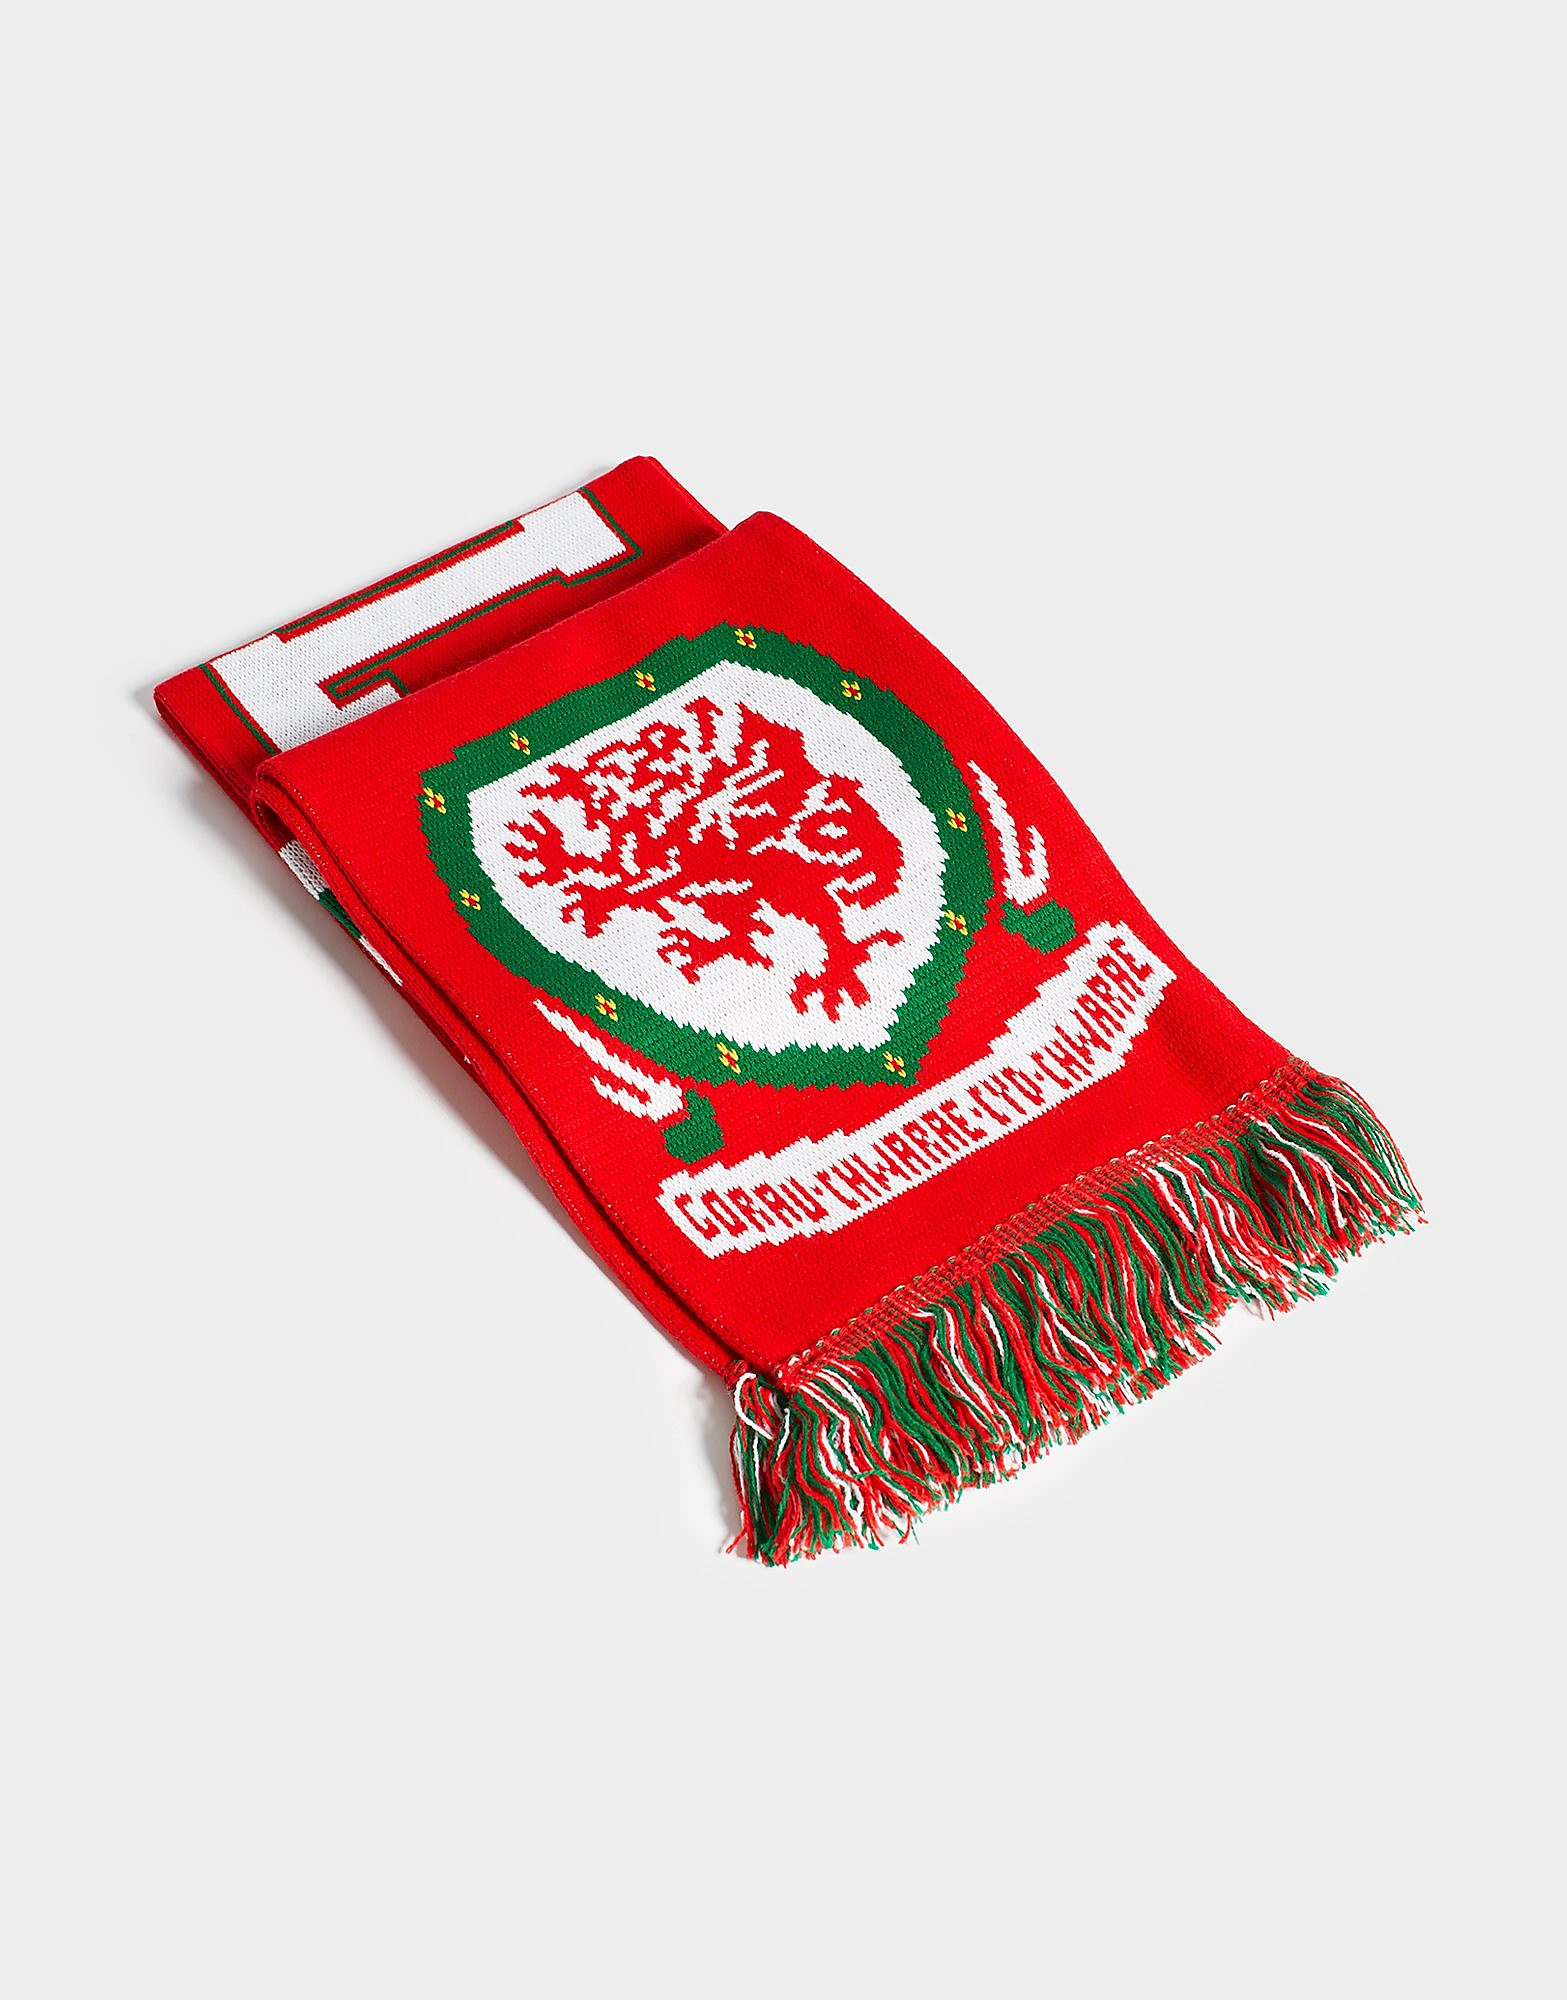 Official Team Wales Jacquard-Schal